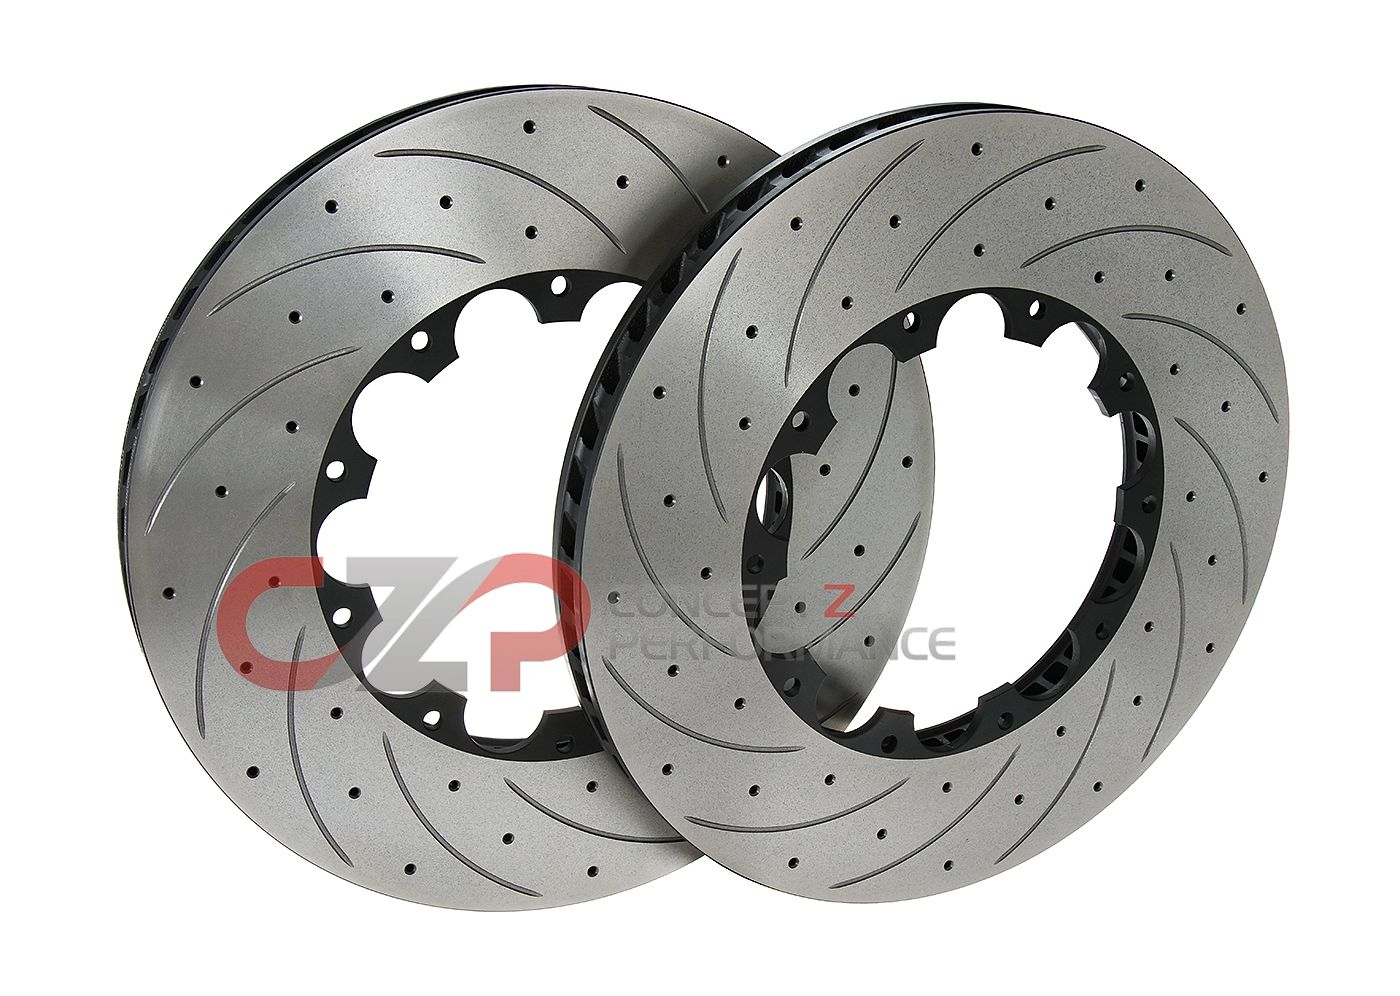 AVS Replacement High Carbon Alloy Steel Rotors, 400x35mm, Front Pair - Nissan GT-R 09+ R35